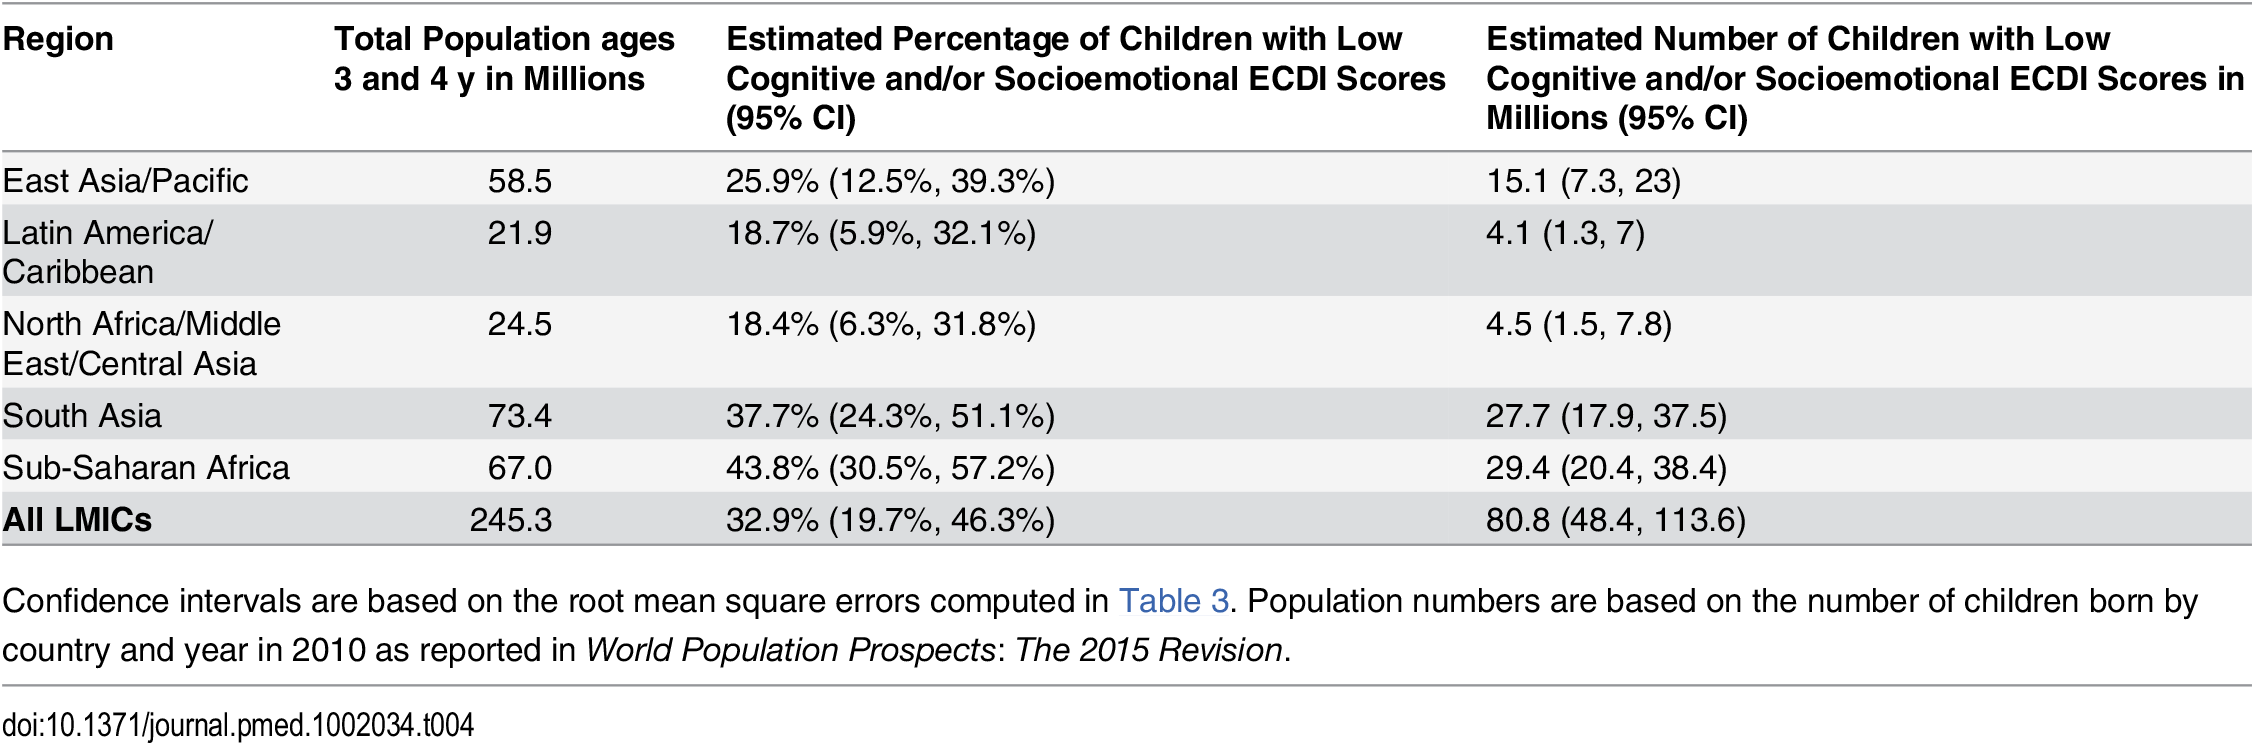 Estimated number of 3- and 4-y-olds with low development according to the ECDI by region.